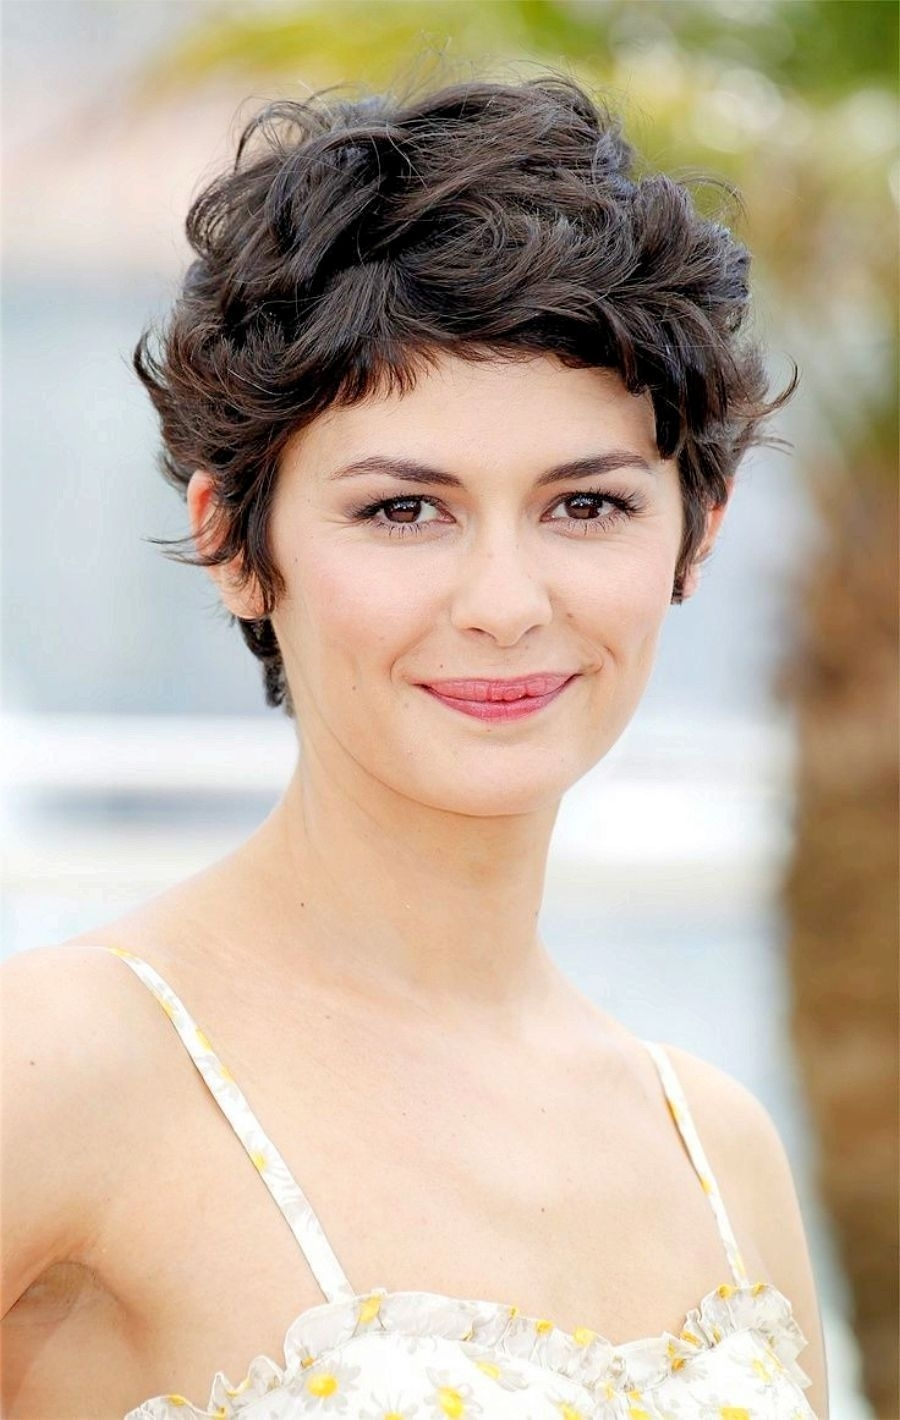 35 Charming Curly Pixie Hairstyles For Women | Hairstyles with Haircut For Curly Hair Short